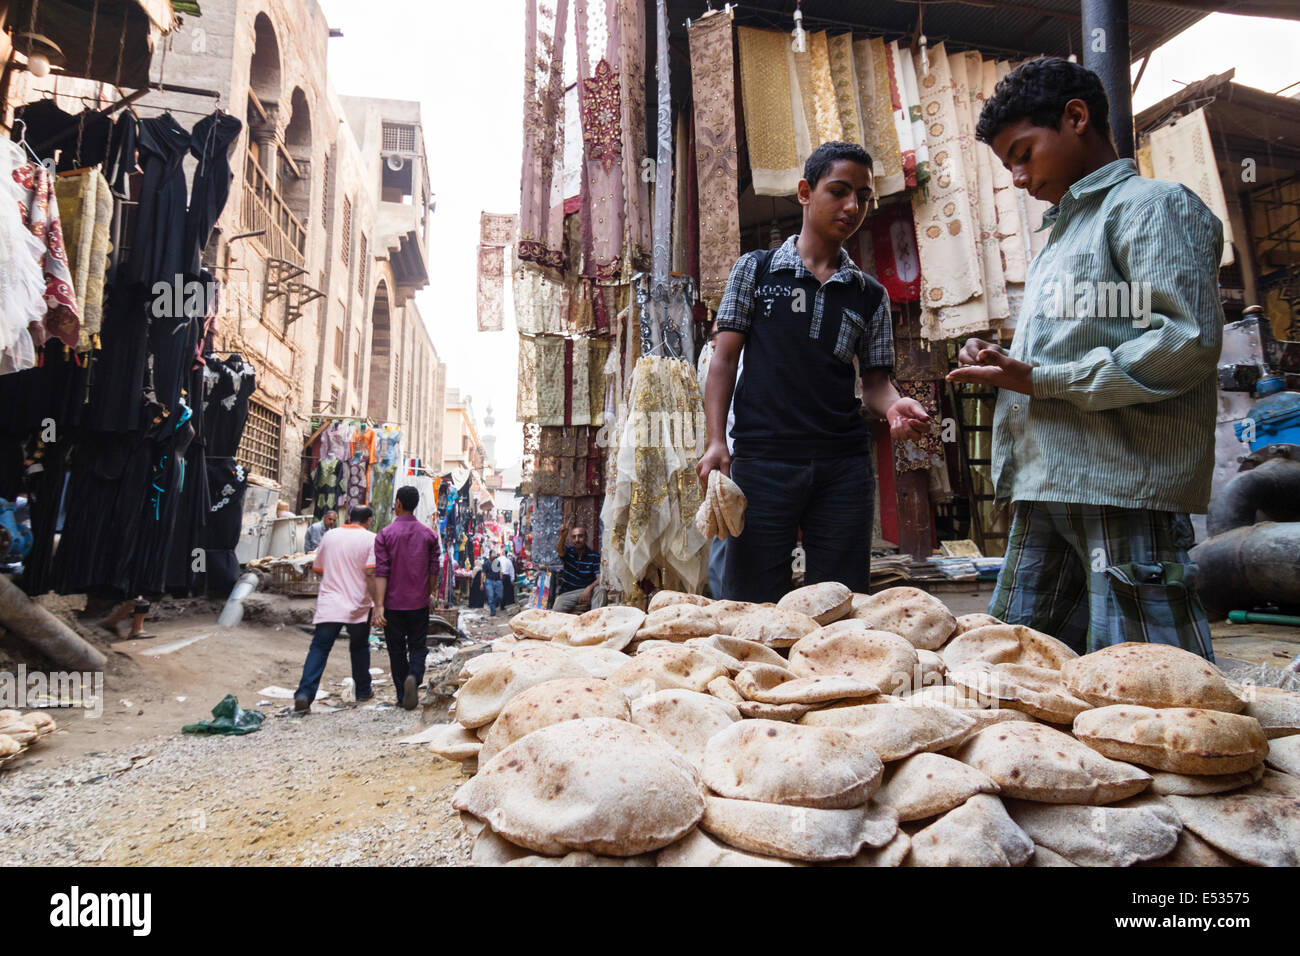 Bazaar street scene with child selling bread. Islamic Cairo, Egypt - Stock Image